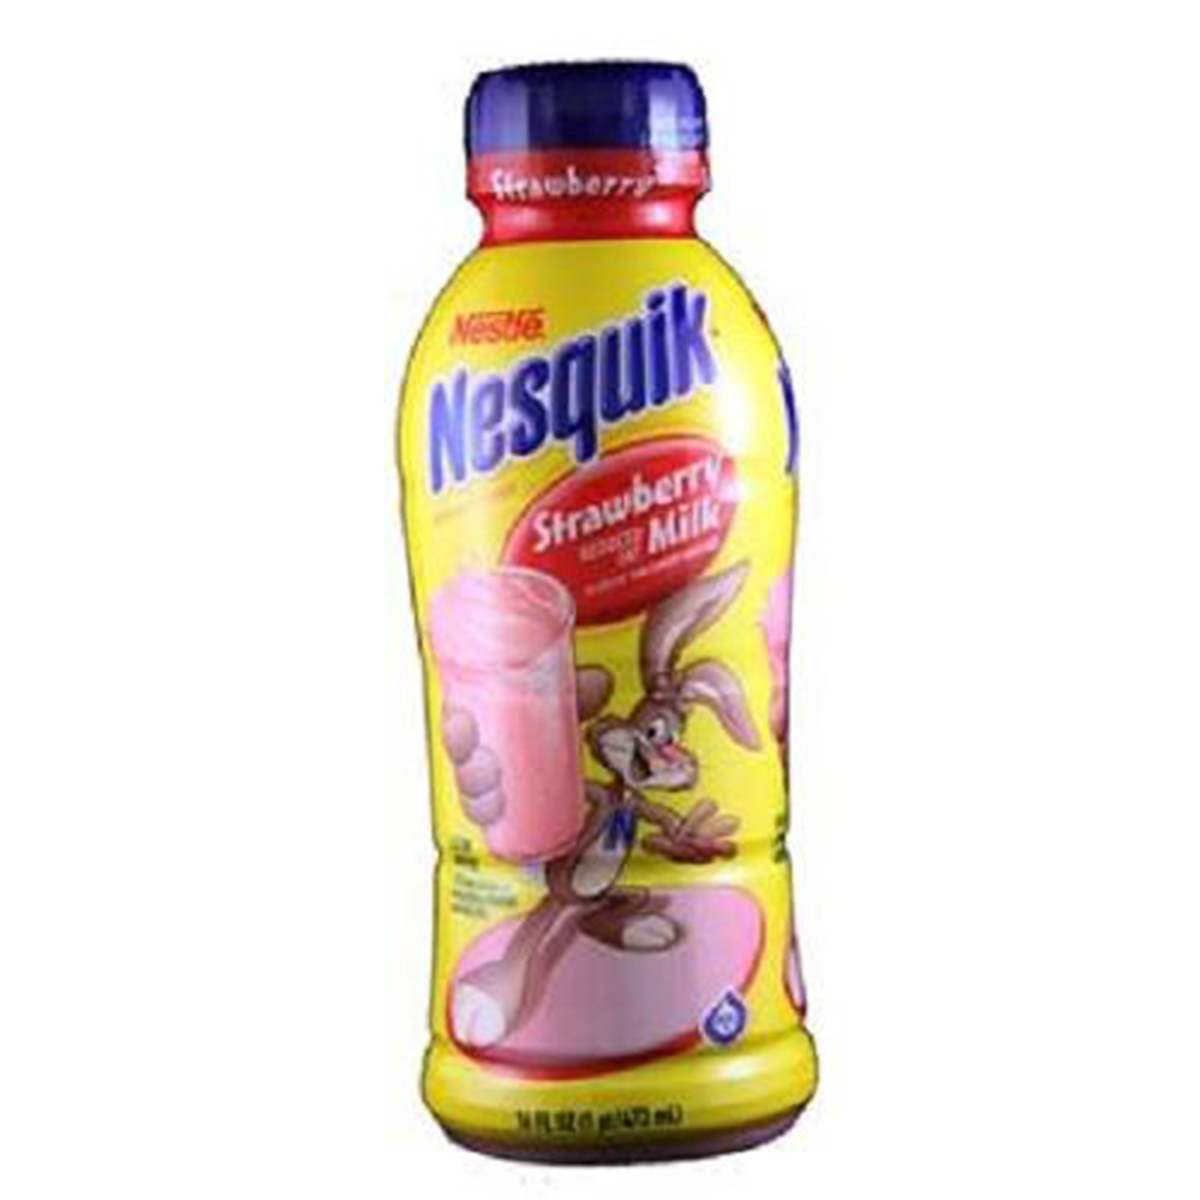 Product Of Nesquik, Low Fat Milk - Strawberry, Count 12 (14 oz) - Milk/Yogurt/Smoothie / Grab Varieties & Flavors